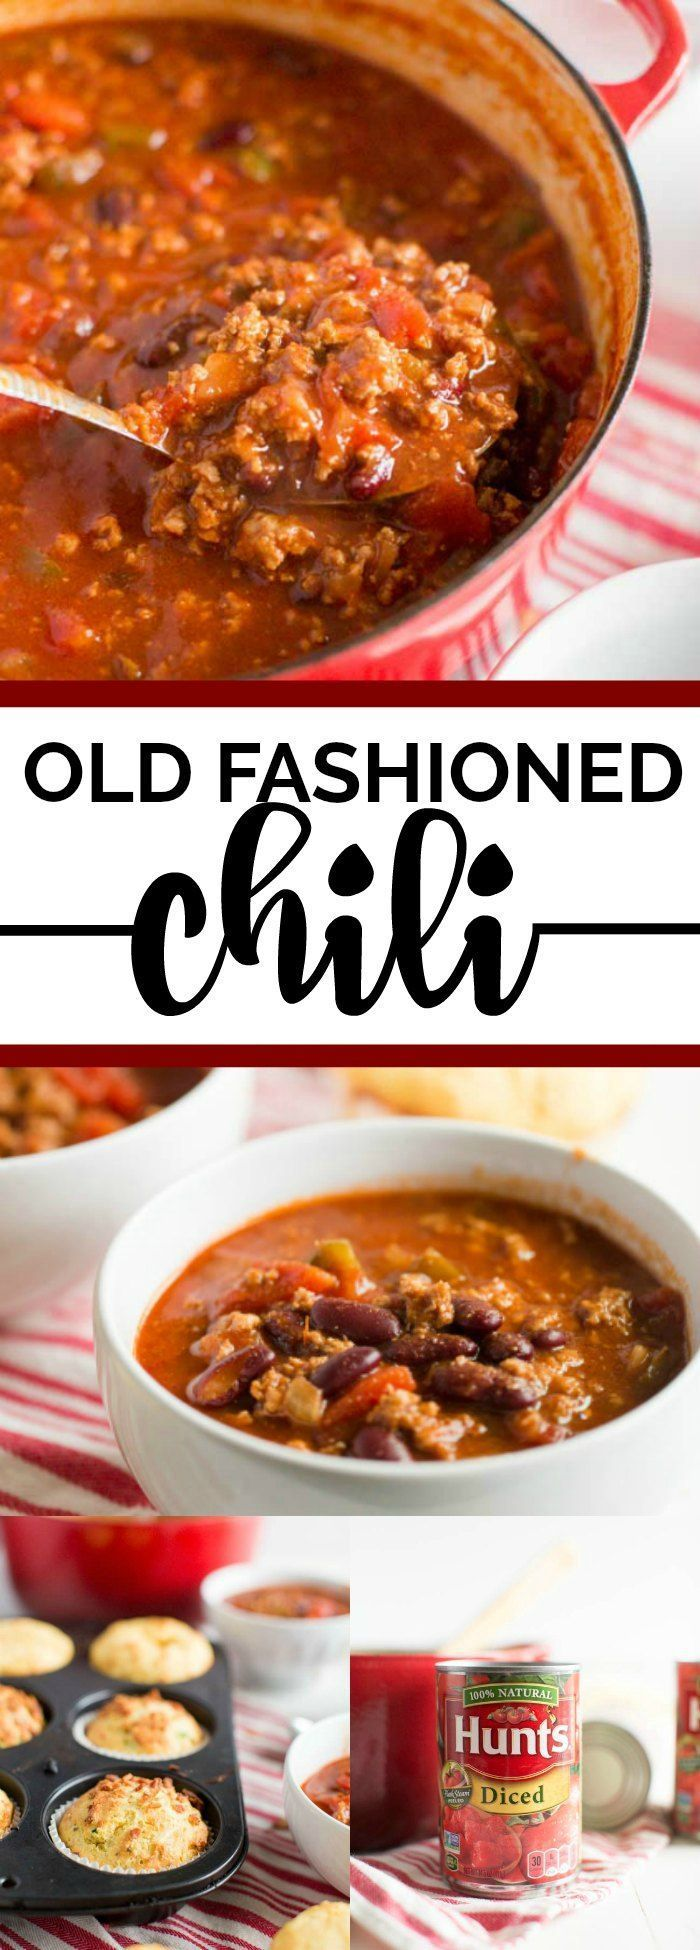 Old fashioned chili recipe. This is so easy! It's seriously THE best #yummy #yummyfood ALSO OLD FASHION CORNBREAD RECIPE